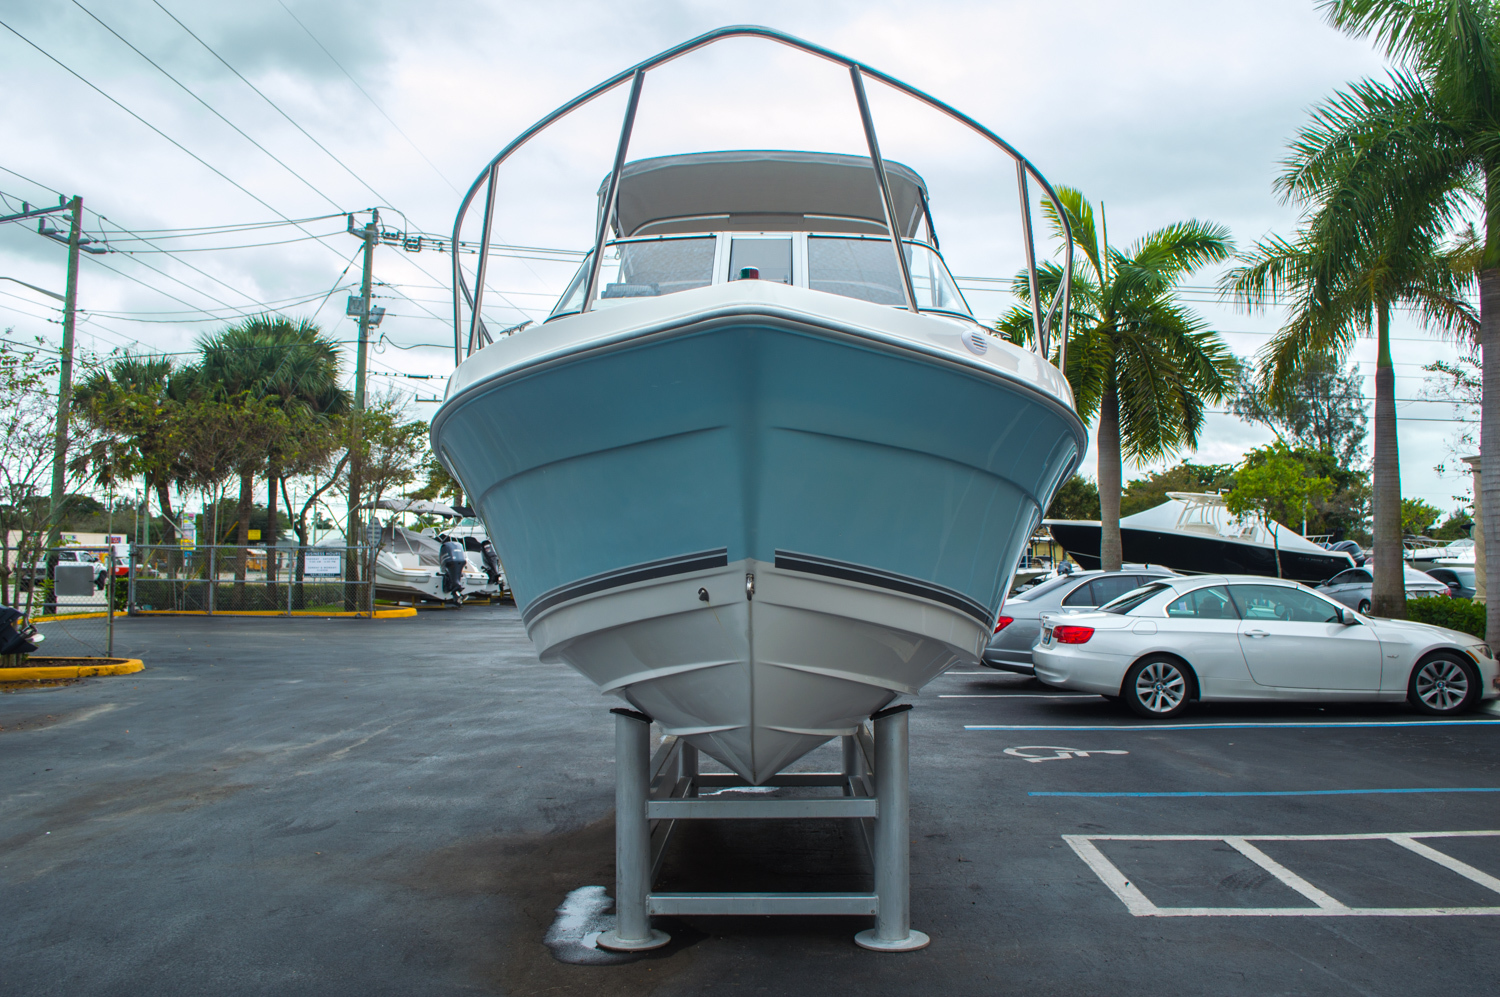 Thumbnail 2 for Used 2004 Cobia 210 WAC Walkaround boat for sale in West Palm Beach, FL